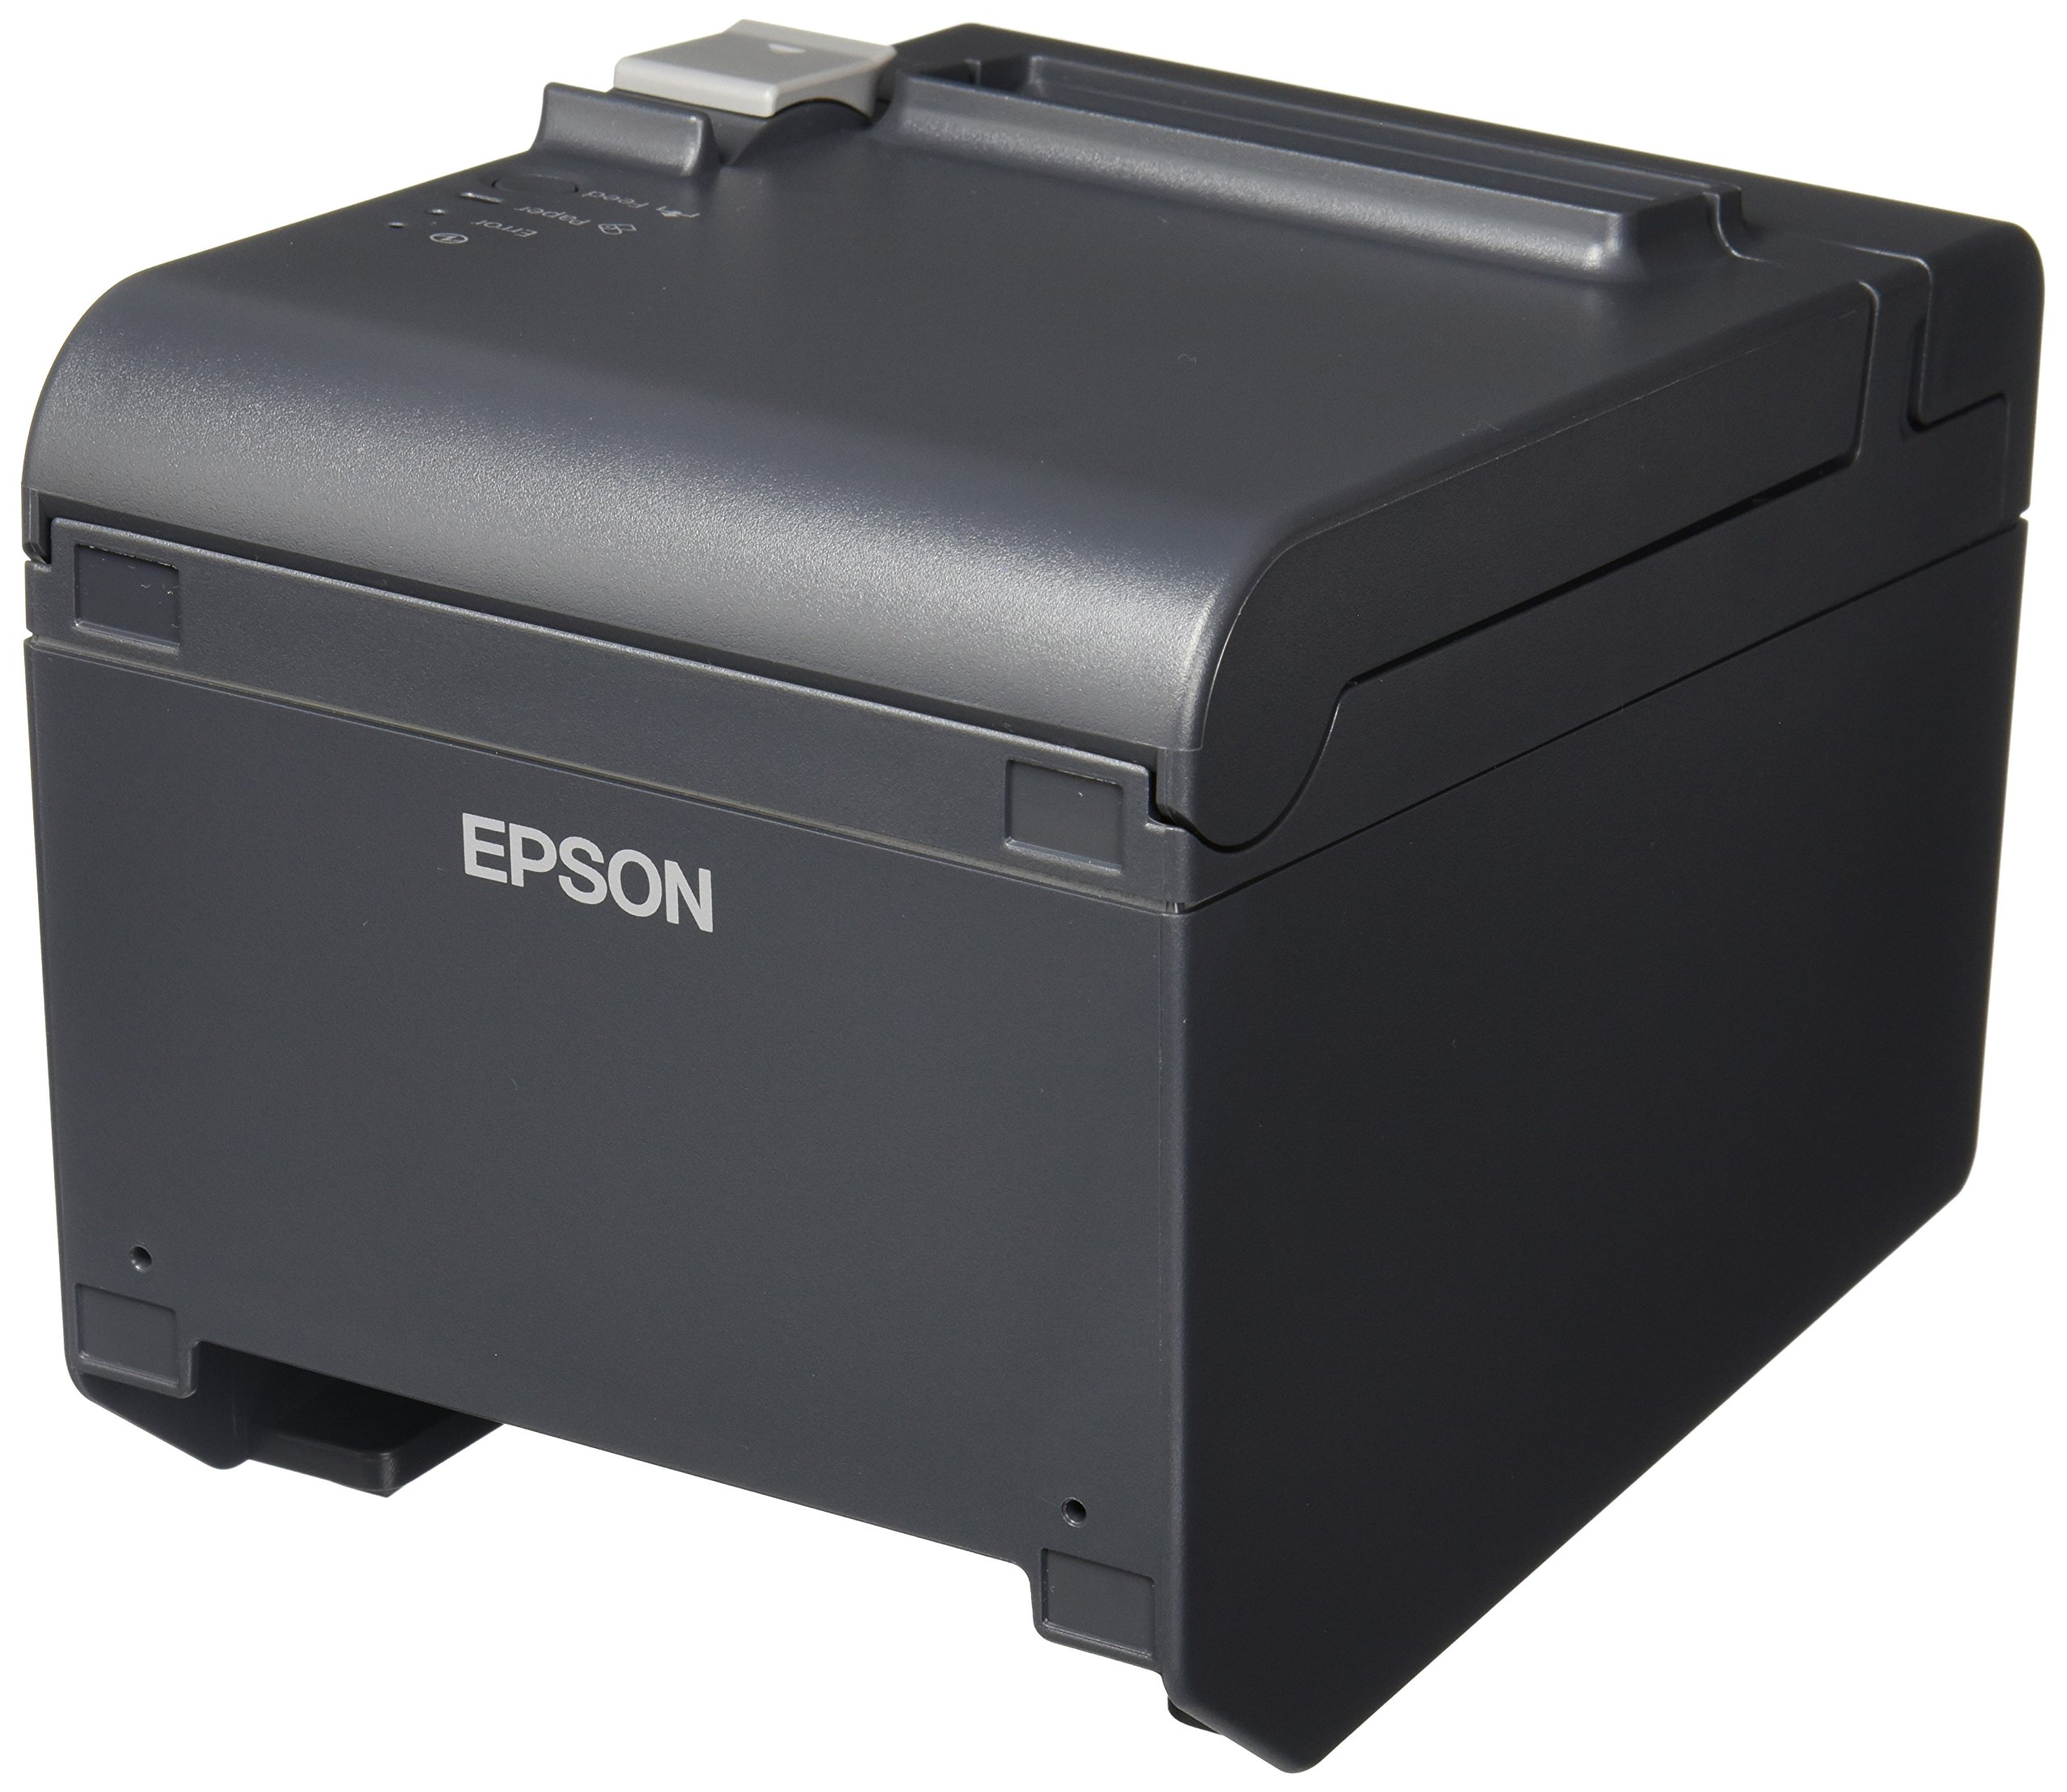 Epson TM-T20II Direct Thermal Printer USB - Monochrome - Desktop - Receipt Print C31CD52062 by Epson